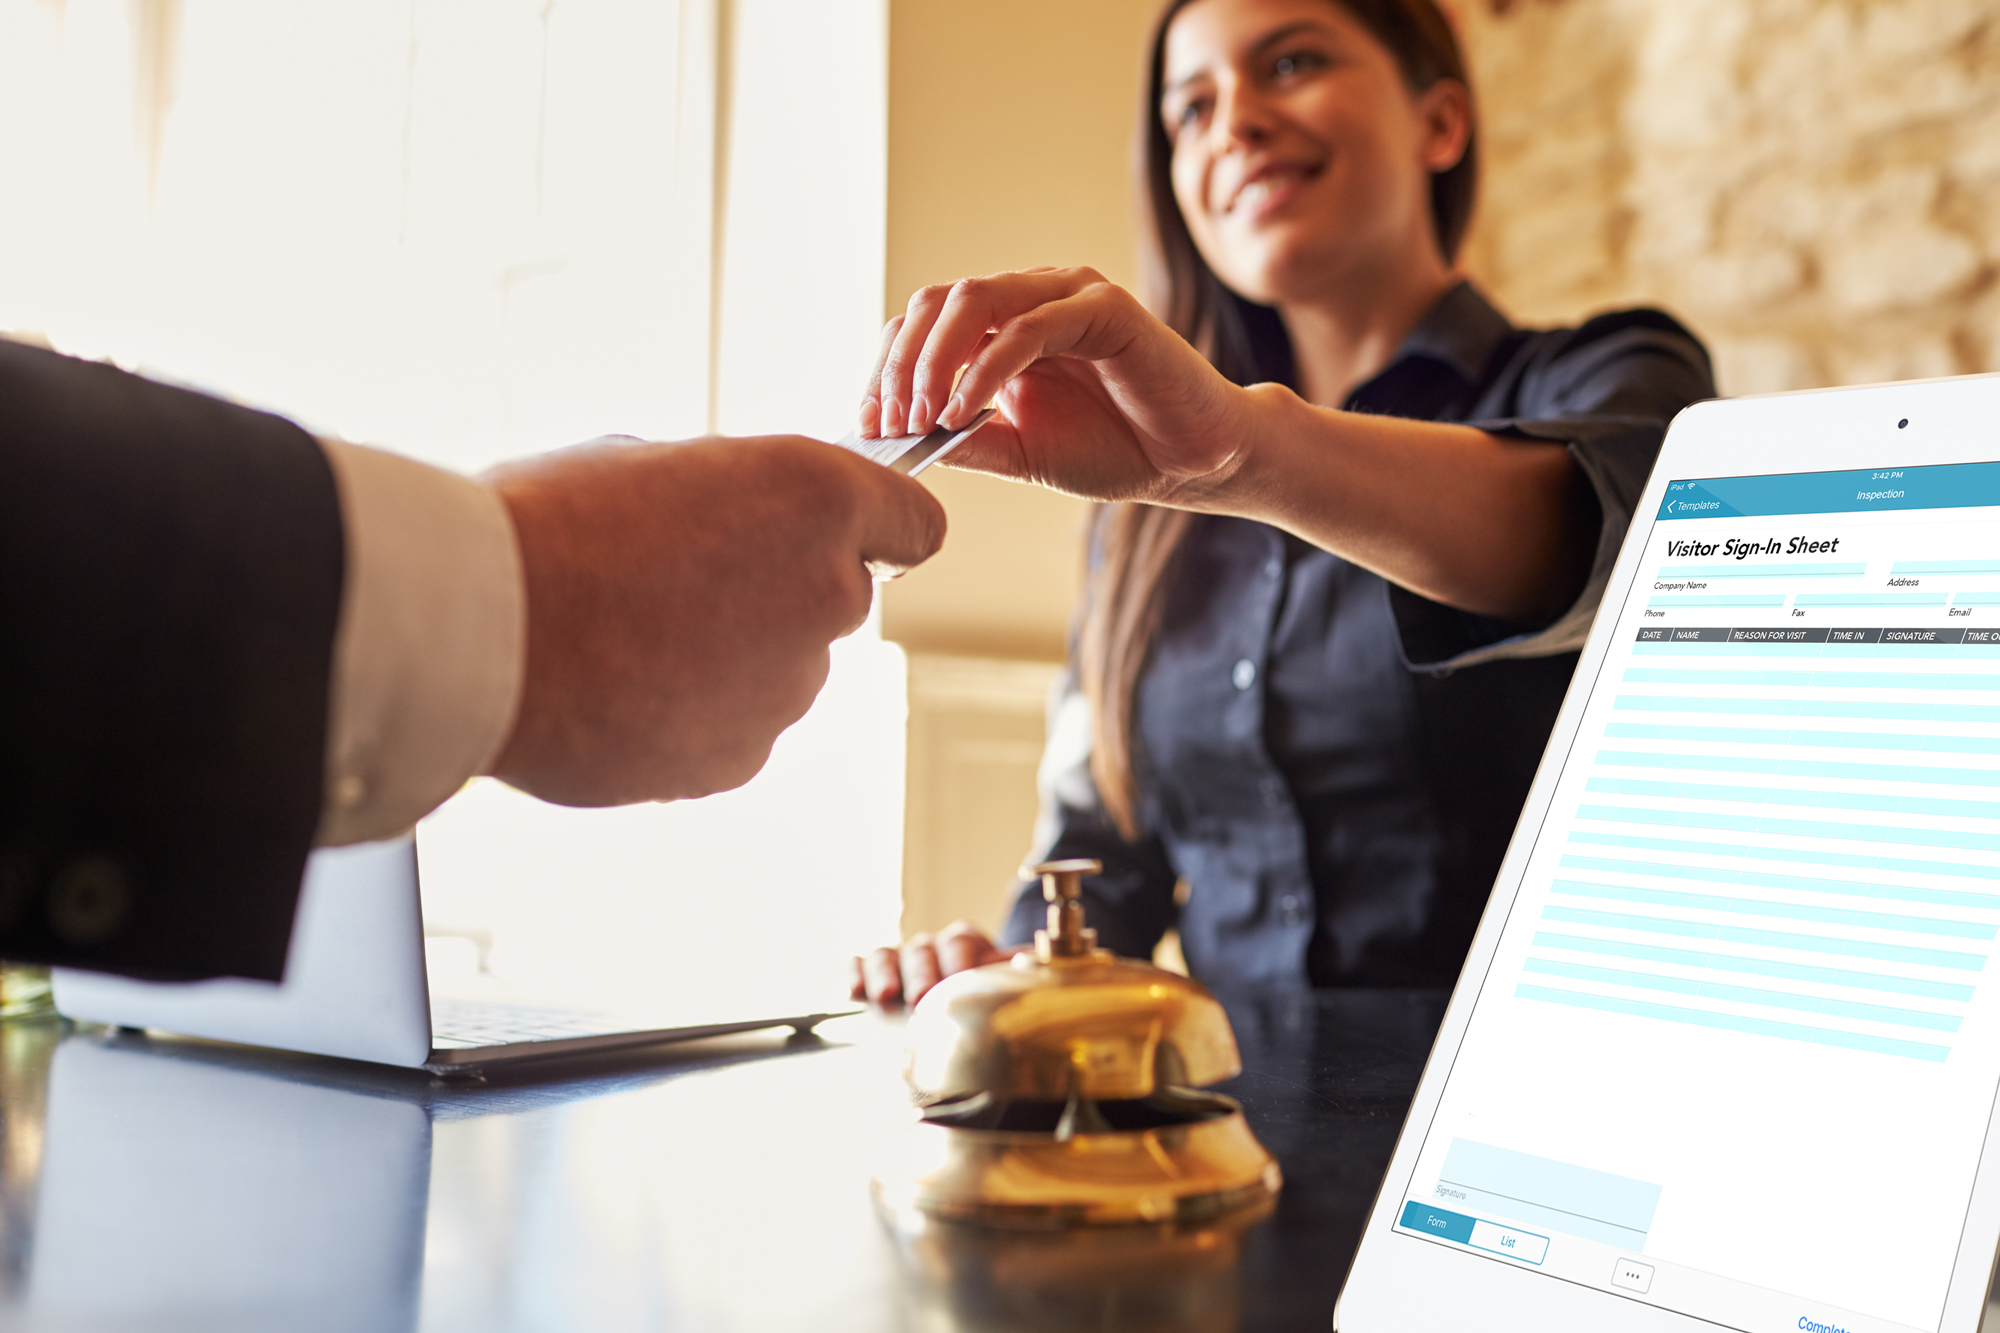 Use digital hospitality forms and hospitality checklists to elevate your customer service, safety inspections and more